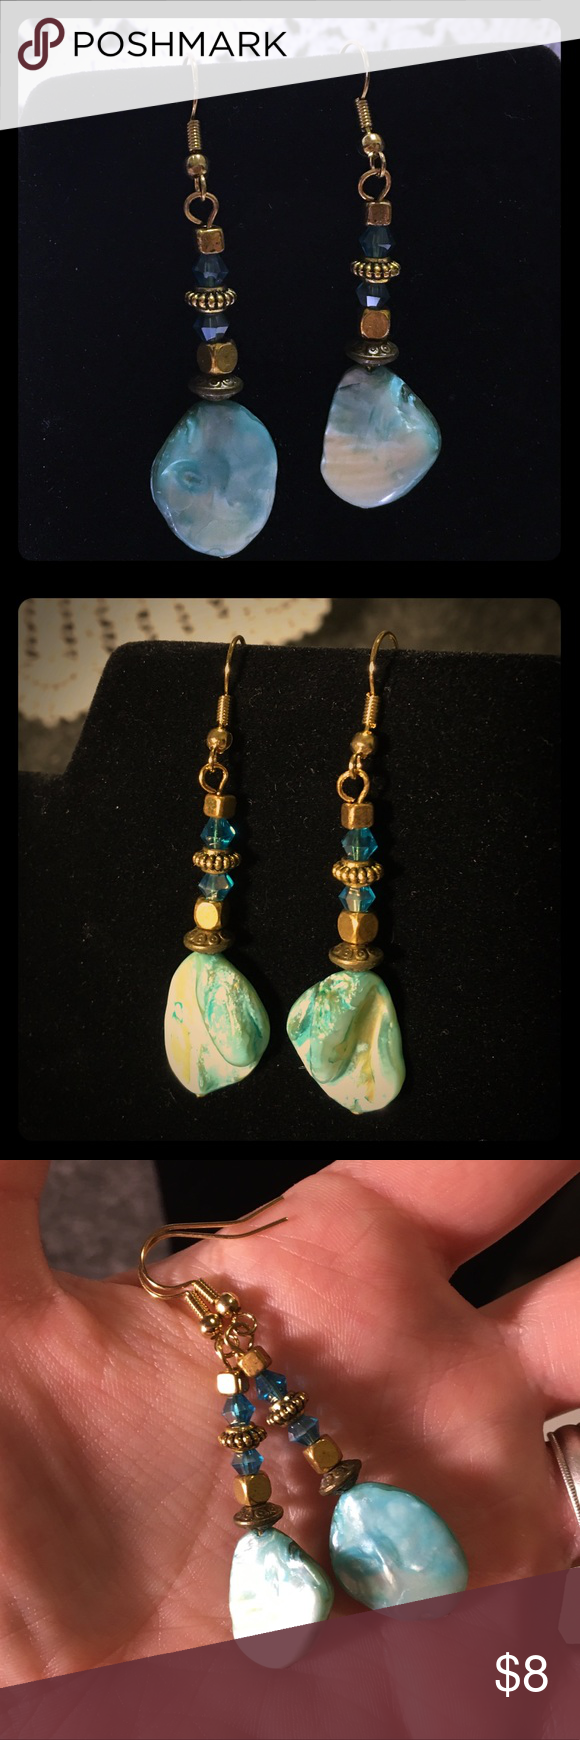 Shell earrings handcrafted by me! Shell, Swarovski crystal ...